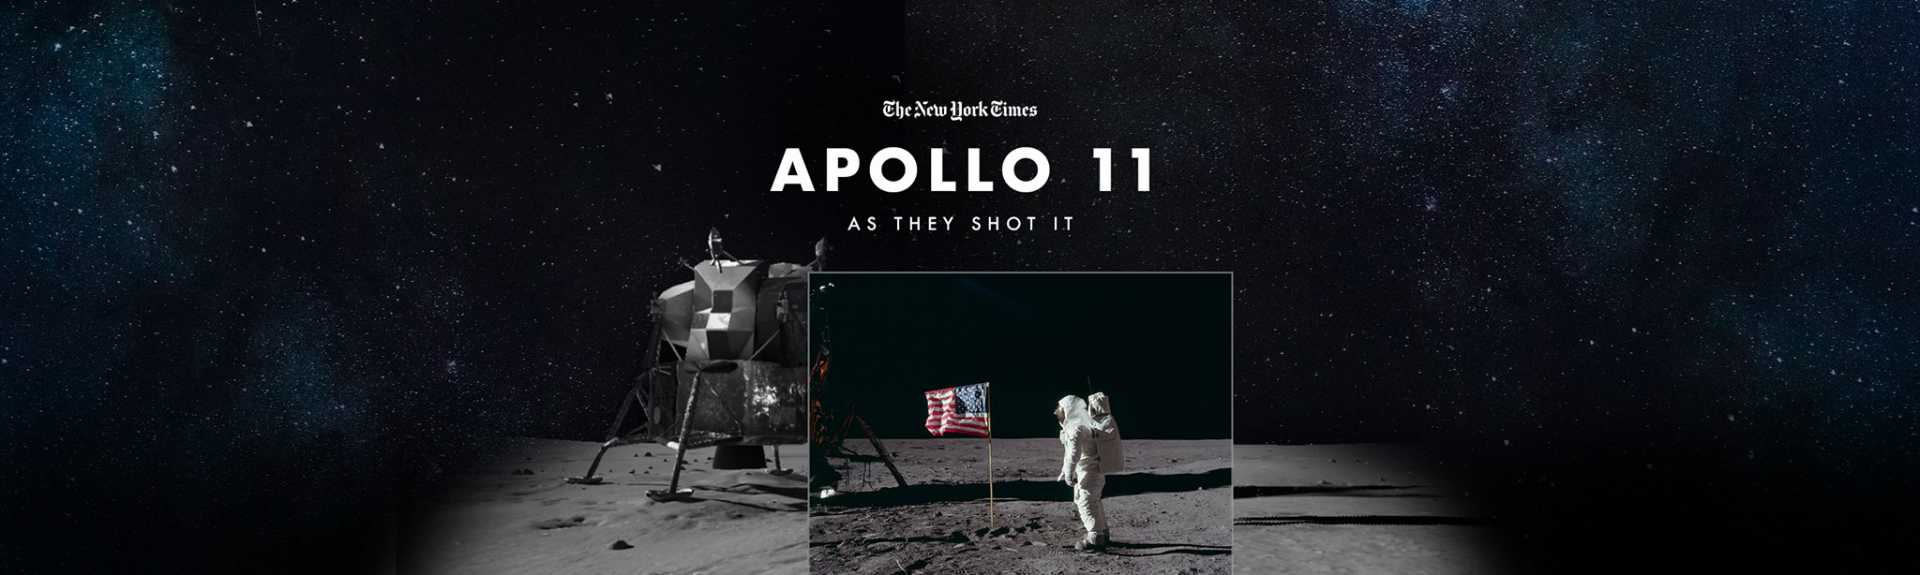 The New York Times: Apollo 11: As They Shot It